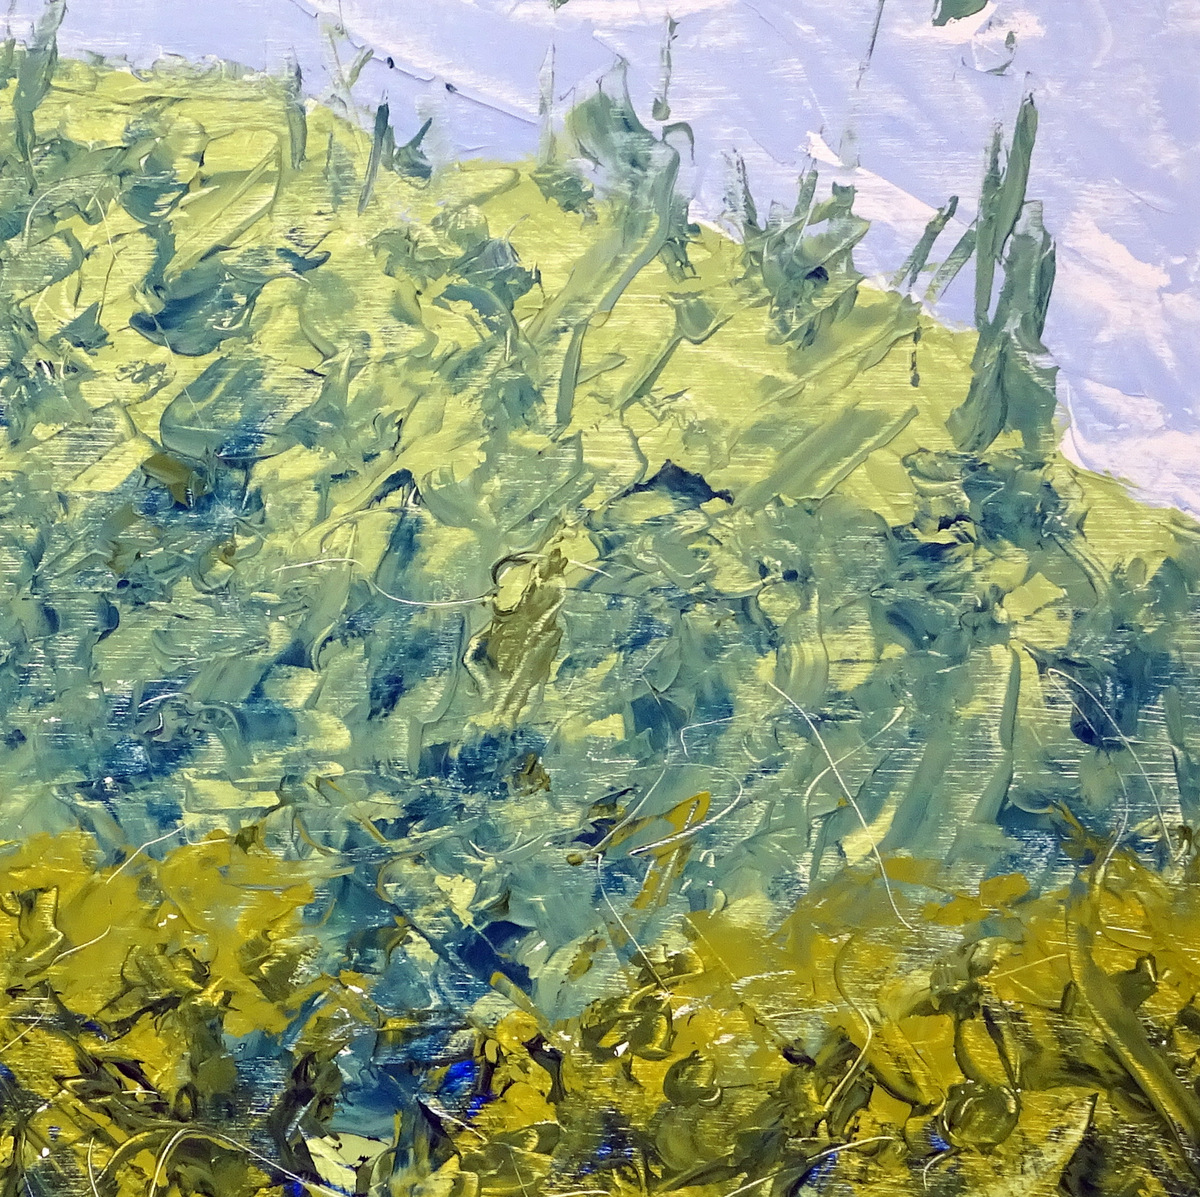 Abstract Expressionist Paintings, Bill Boyd, Black Mountain, NC-013.JPG